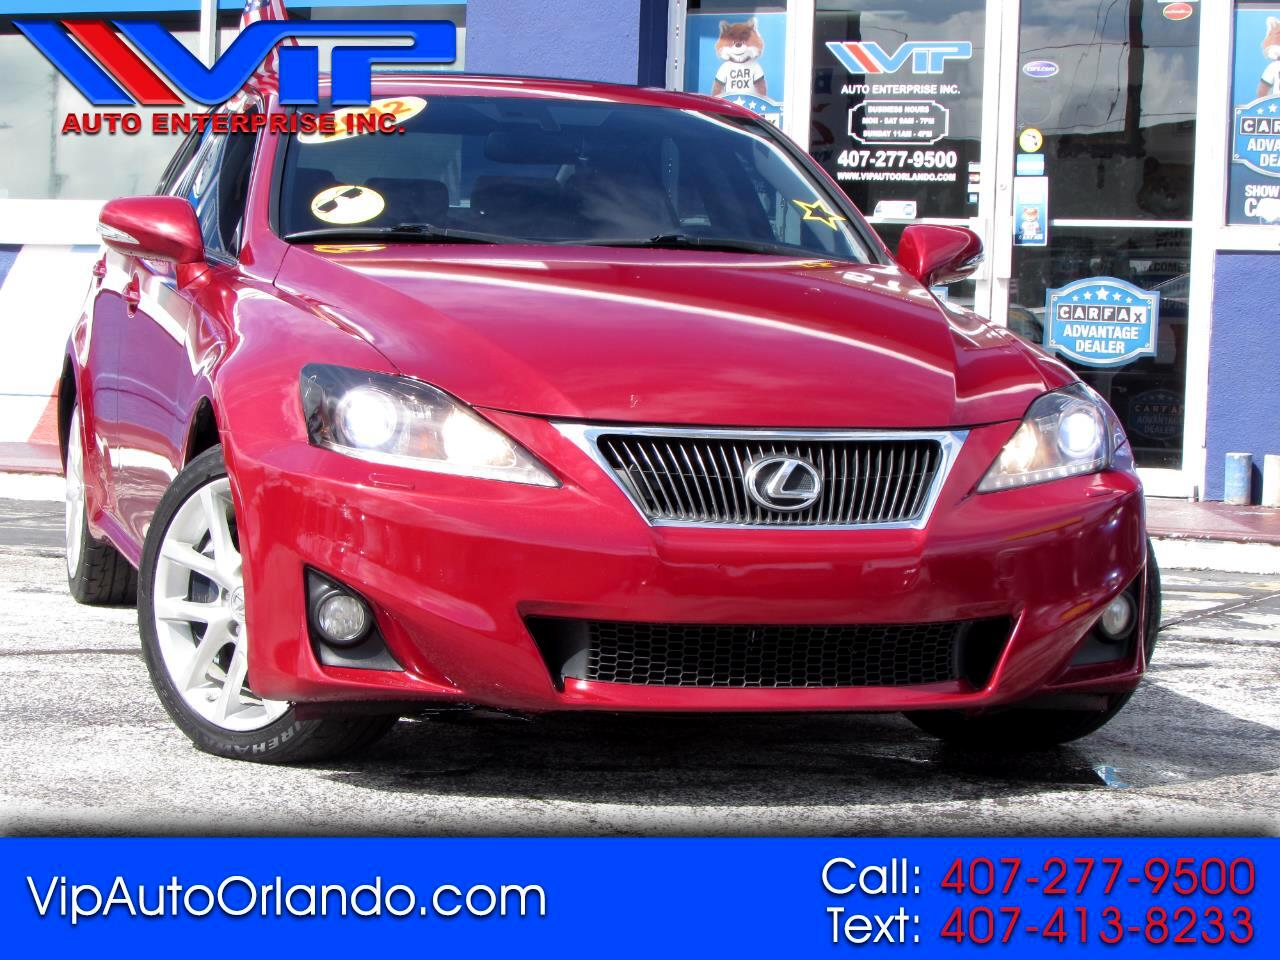 Lexus IS 350 4dr Sdn AWD 2012